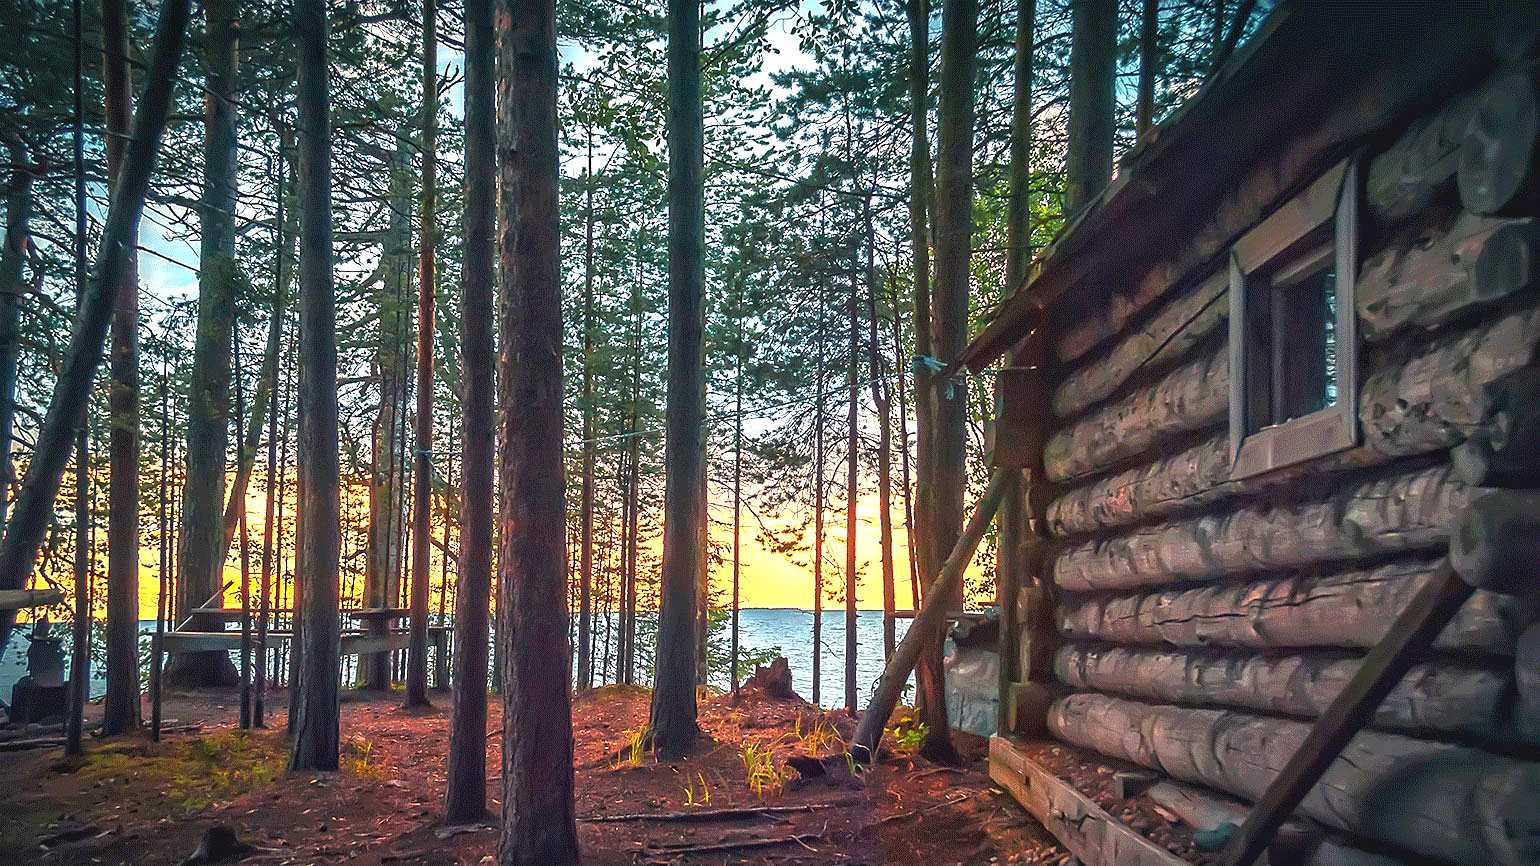 6 Life Lessons from an Old Log Cabin